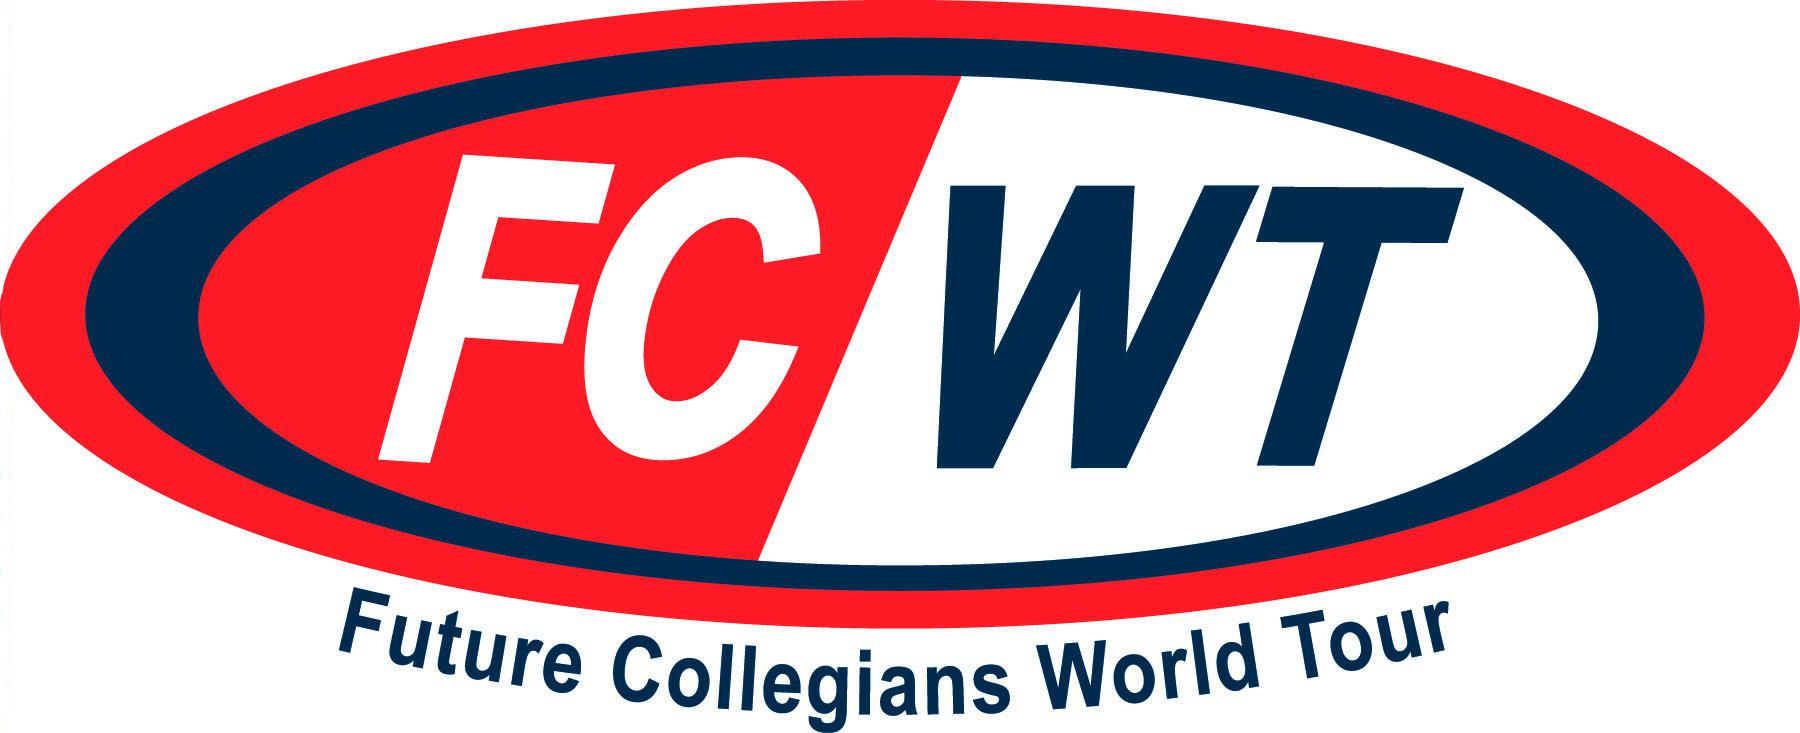 Fcwt world tour logo